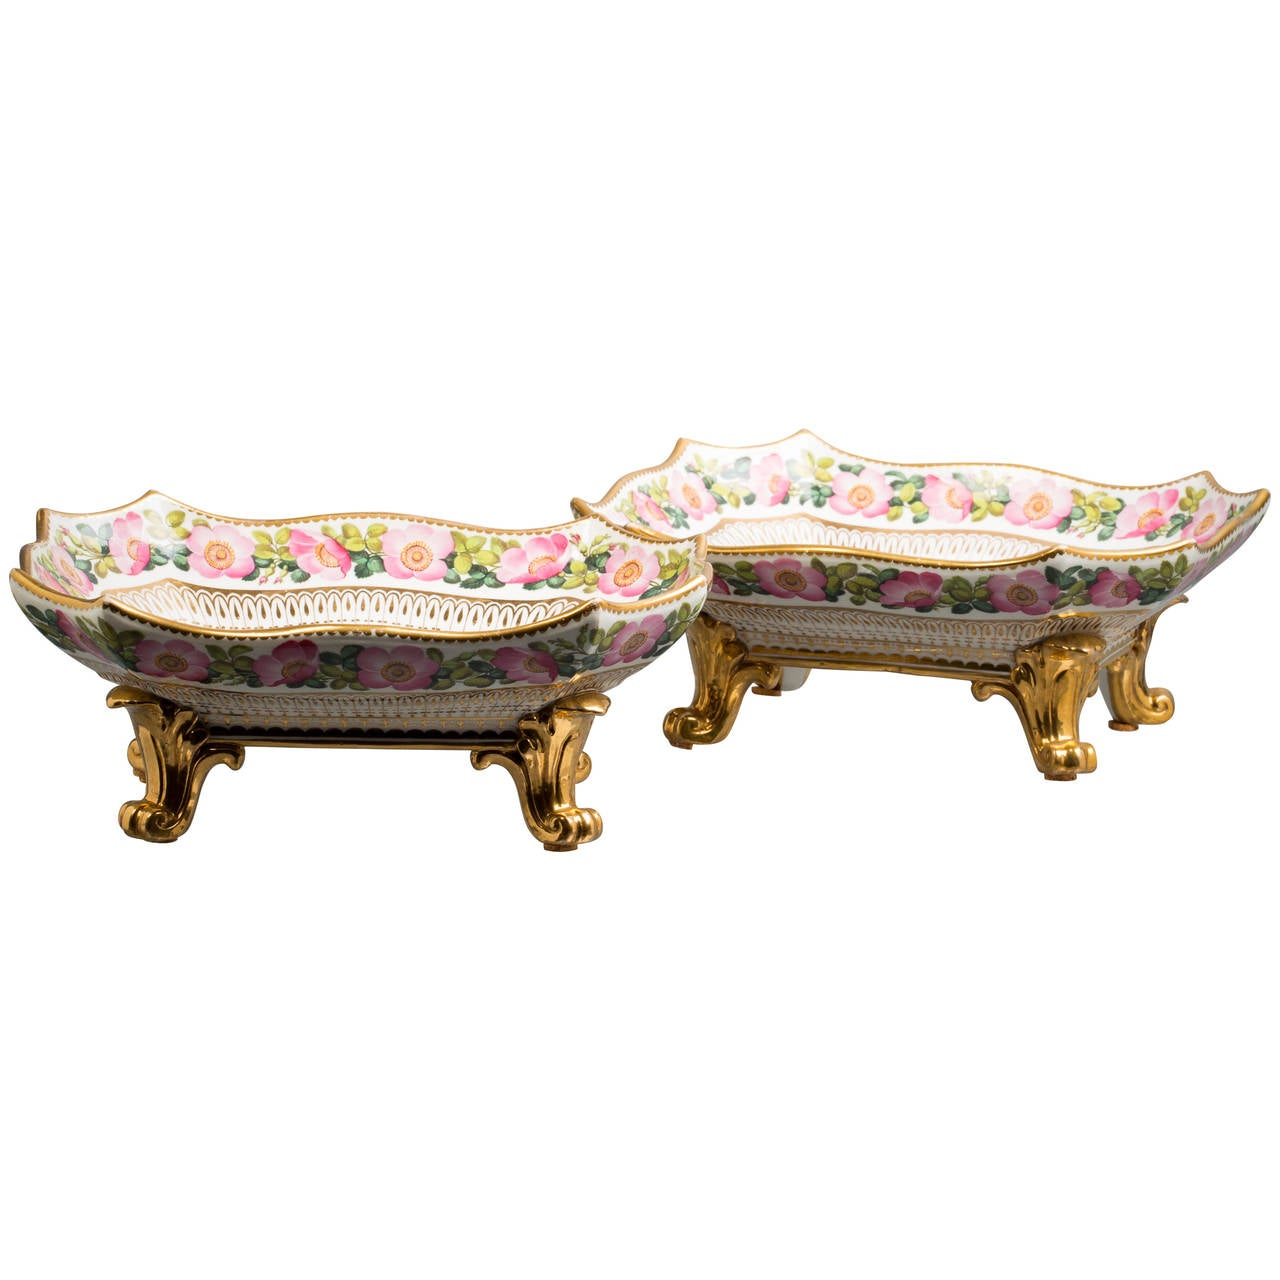 Pair of English Porcelain Footed Dishes, Coalport, circa 1830